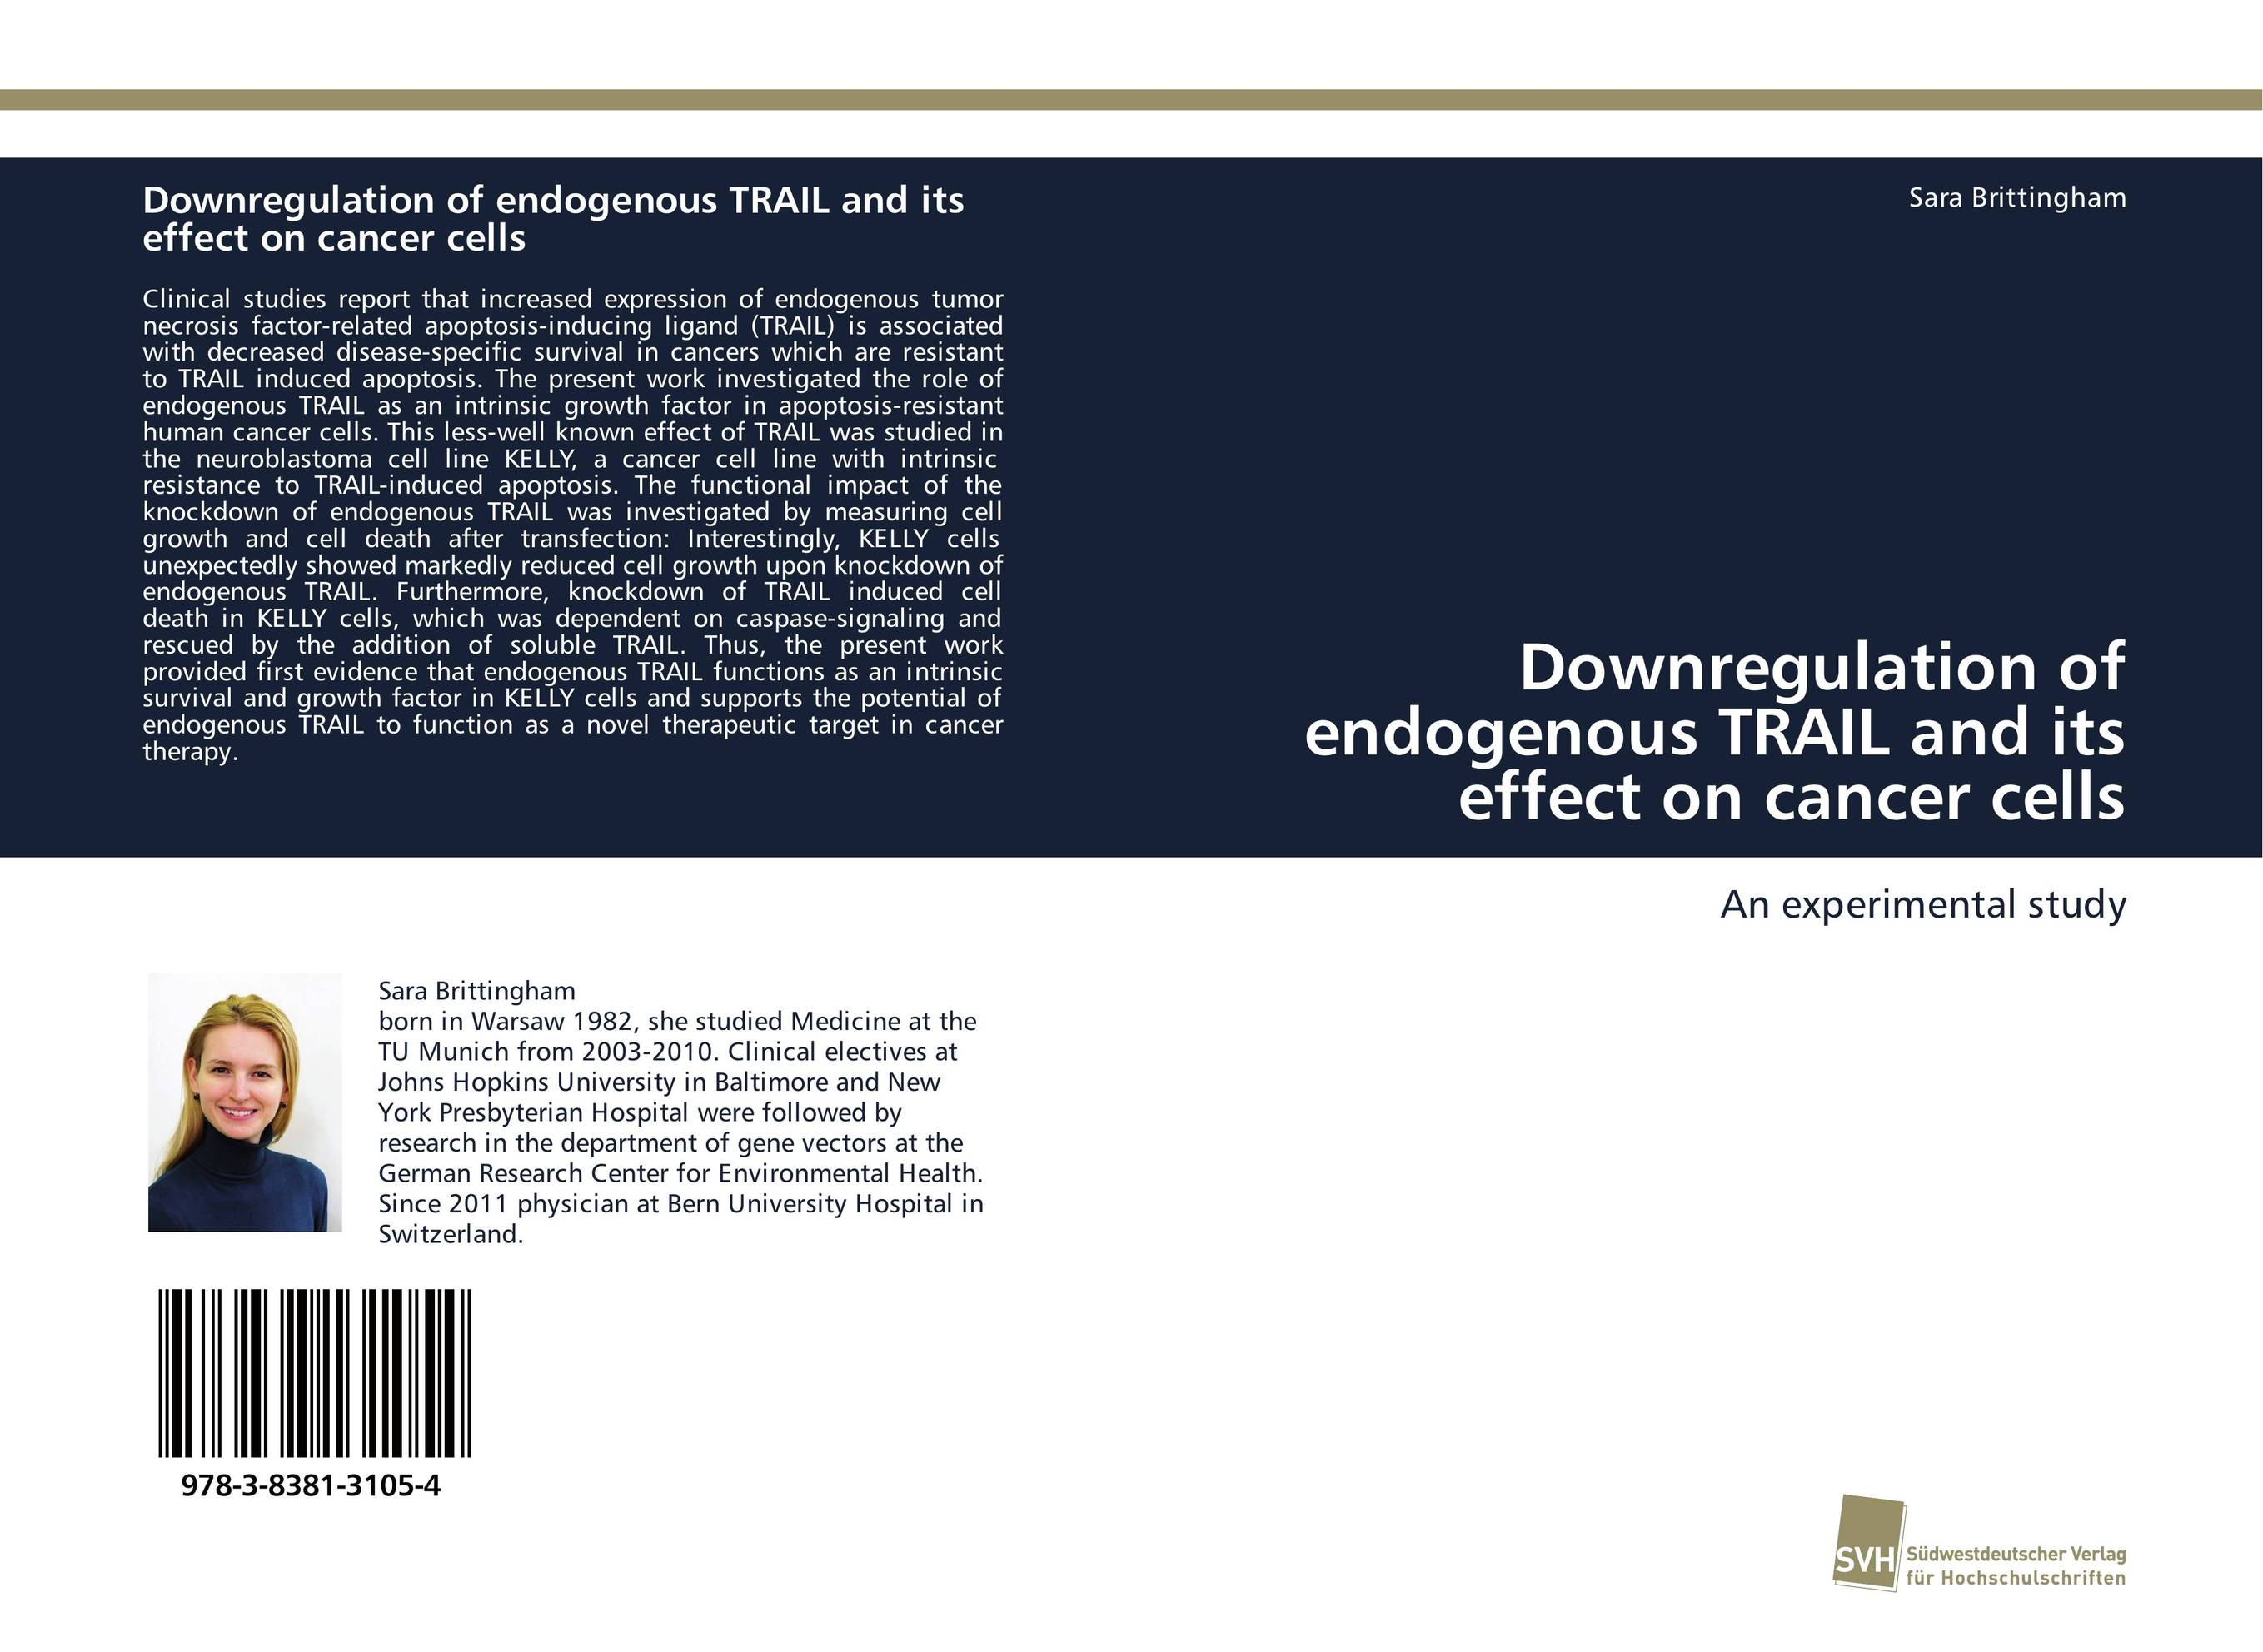 Фото Downregulation of endogenous TRAIL and its effect on cancer cells cervical cancer in amhara region in ethiopia